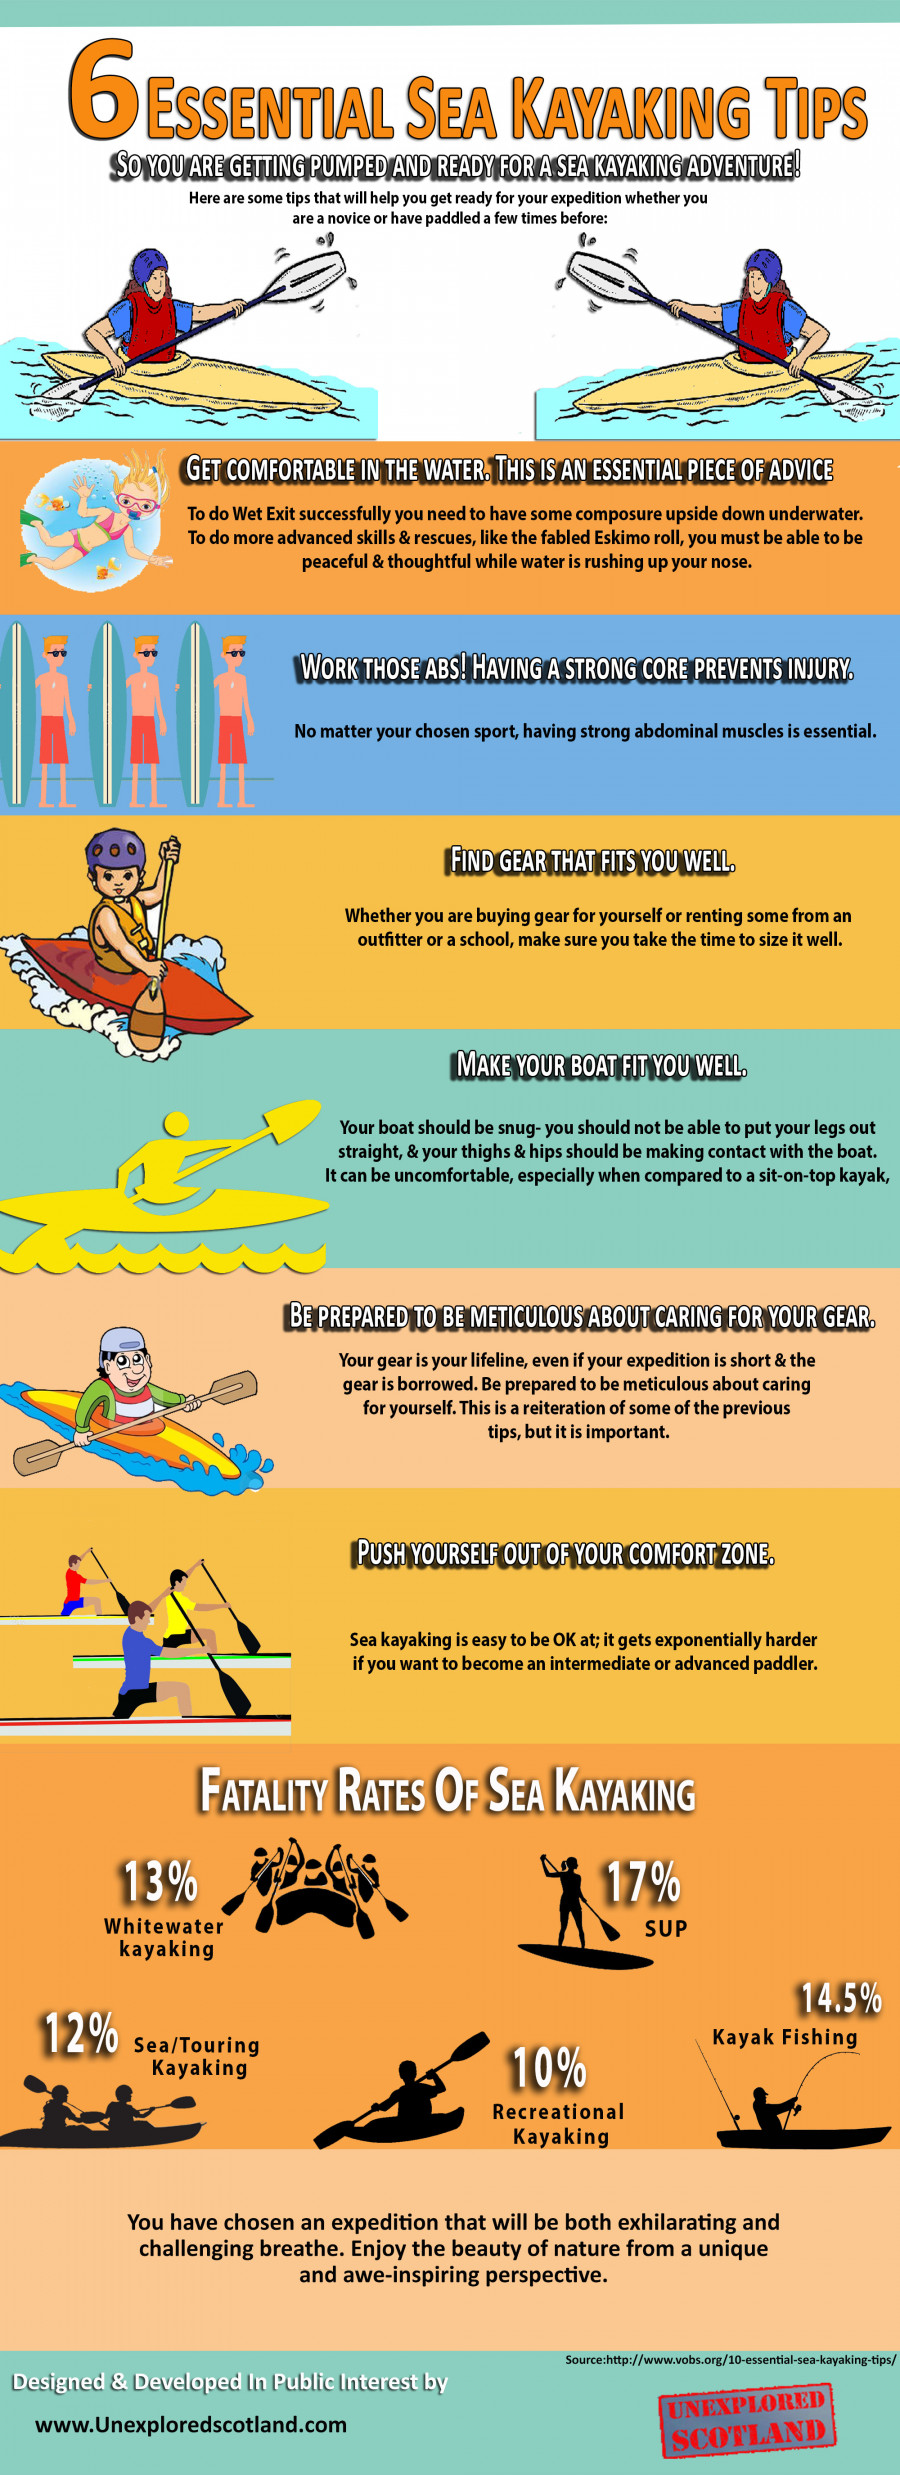 6 Essential Sea Kayaking Tips